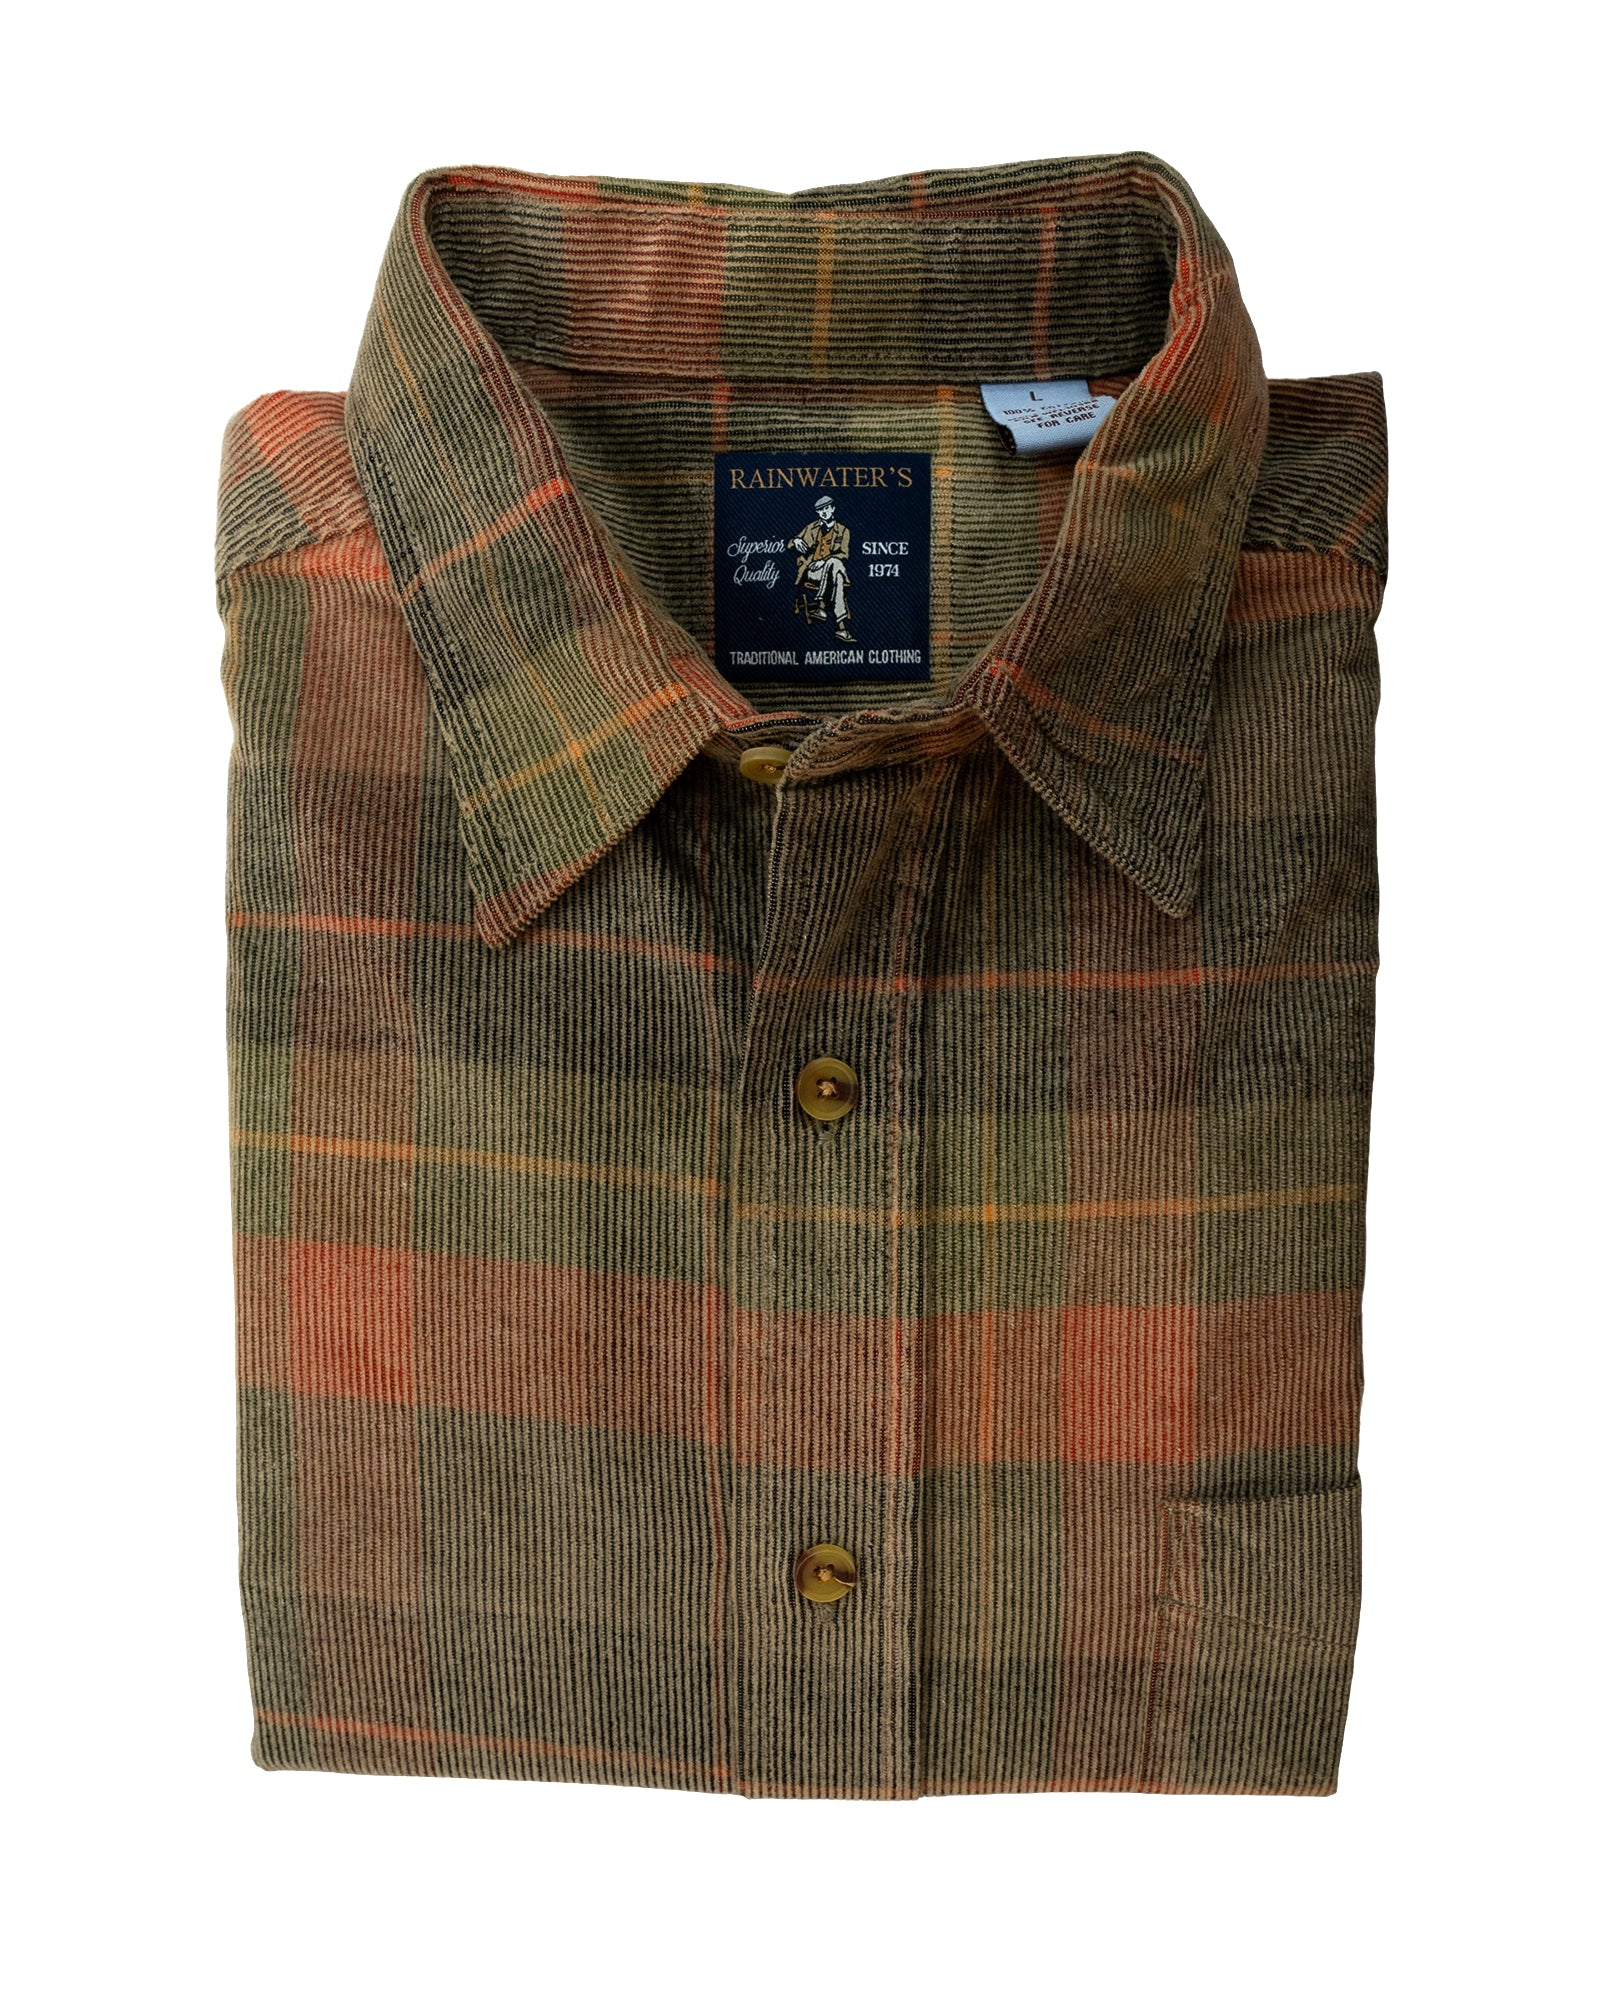 Washed Corduroy Sport Shirt Autumn Multi Colors Plaid Shirt - Rainwater's Men's Clothing and Tuxedo Rental